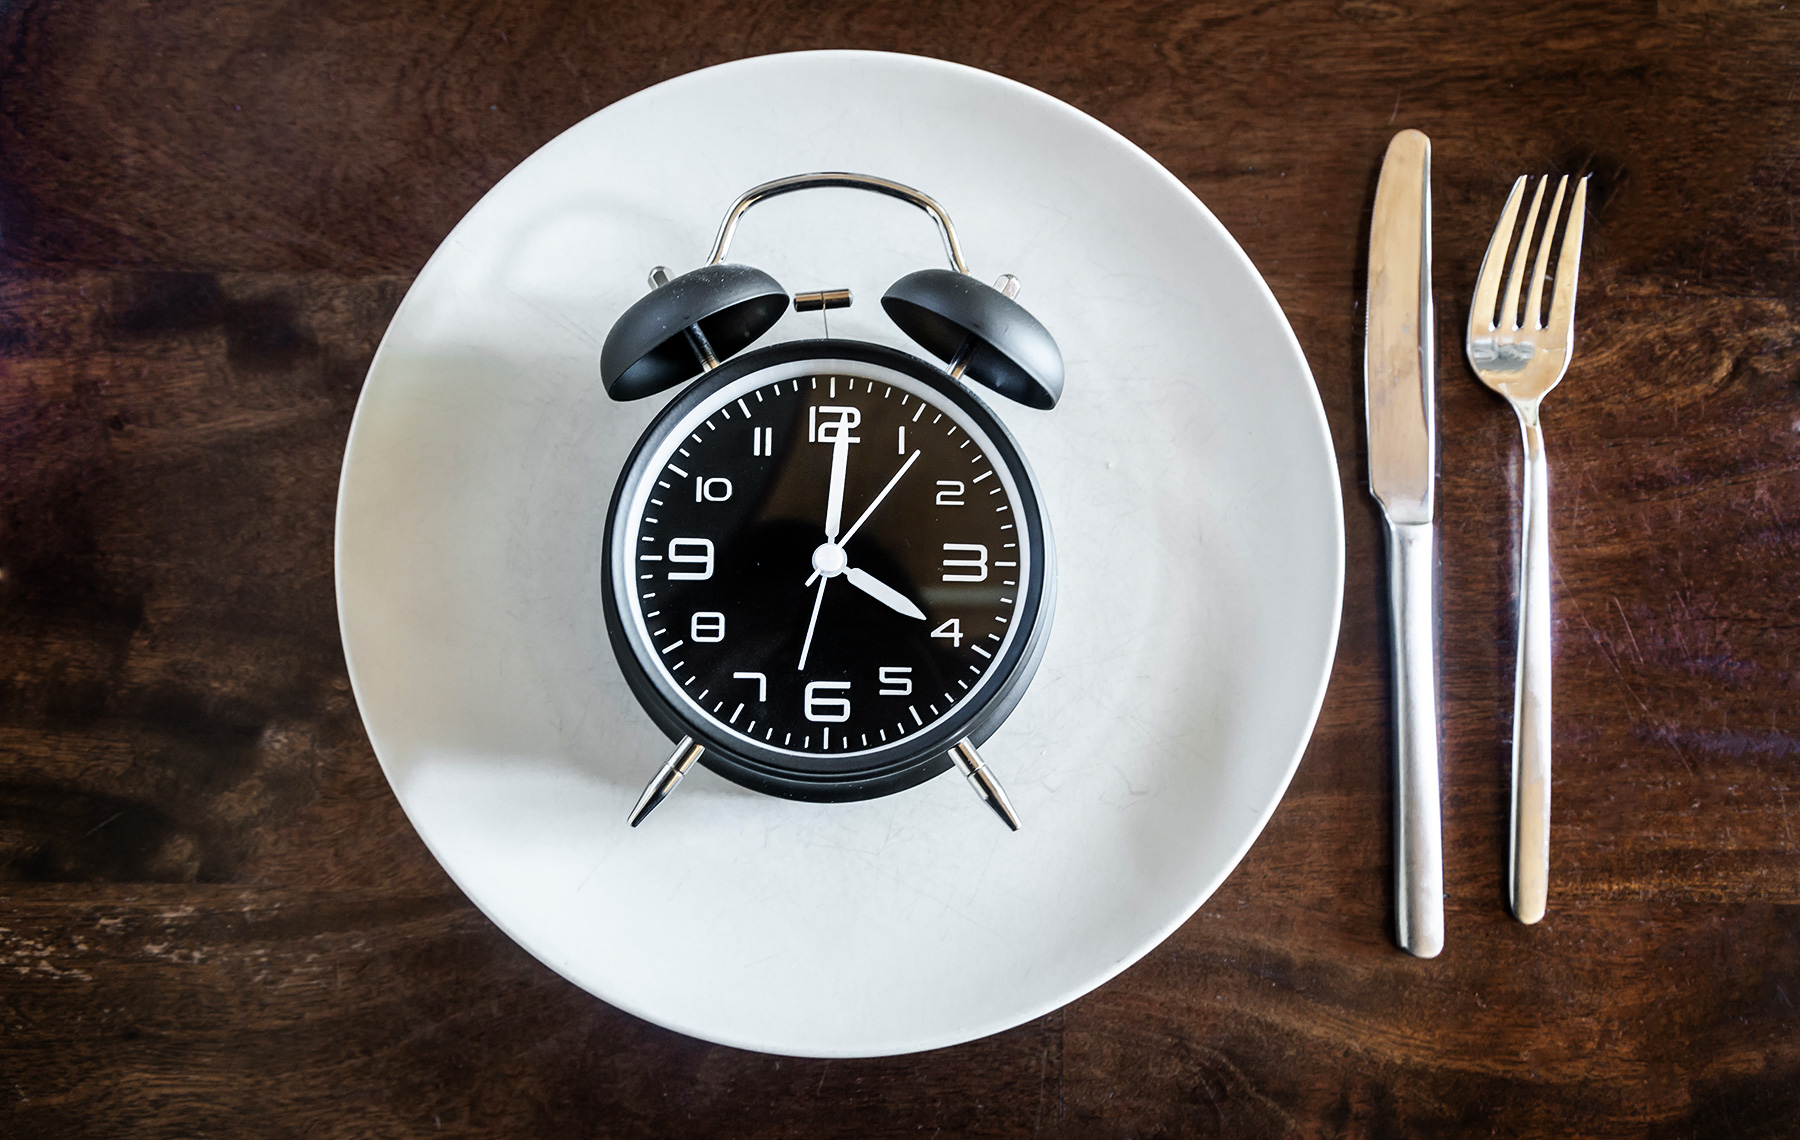 is intermittent fasting for everyone?